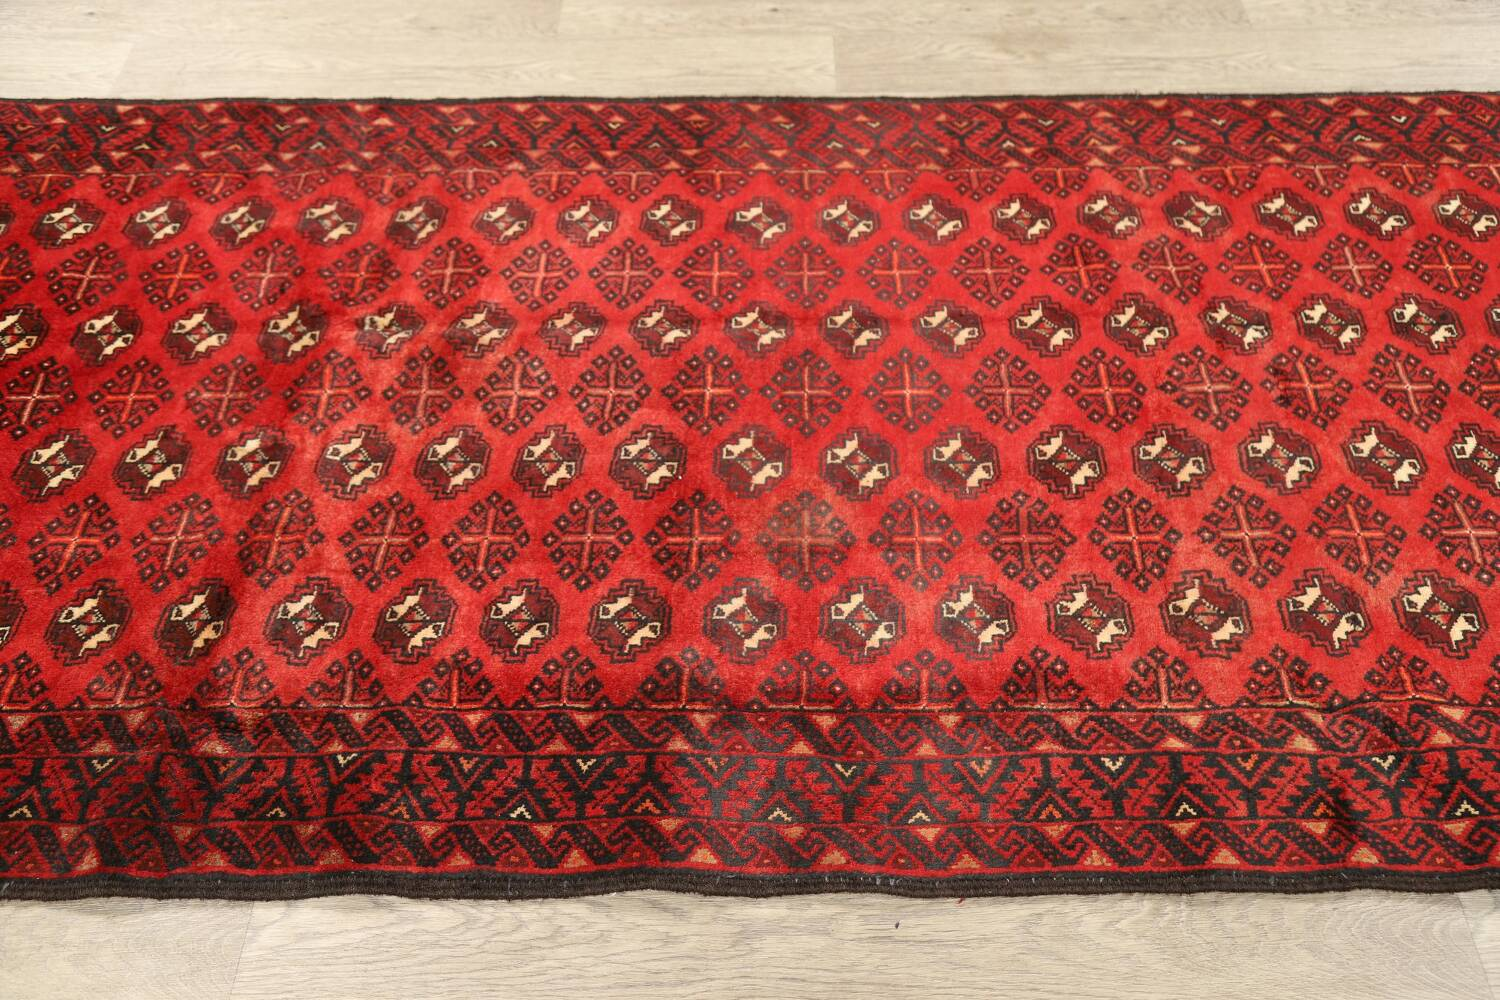 All-Over Red Geometric Balouch Persian Area Rug 4x7 image 11